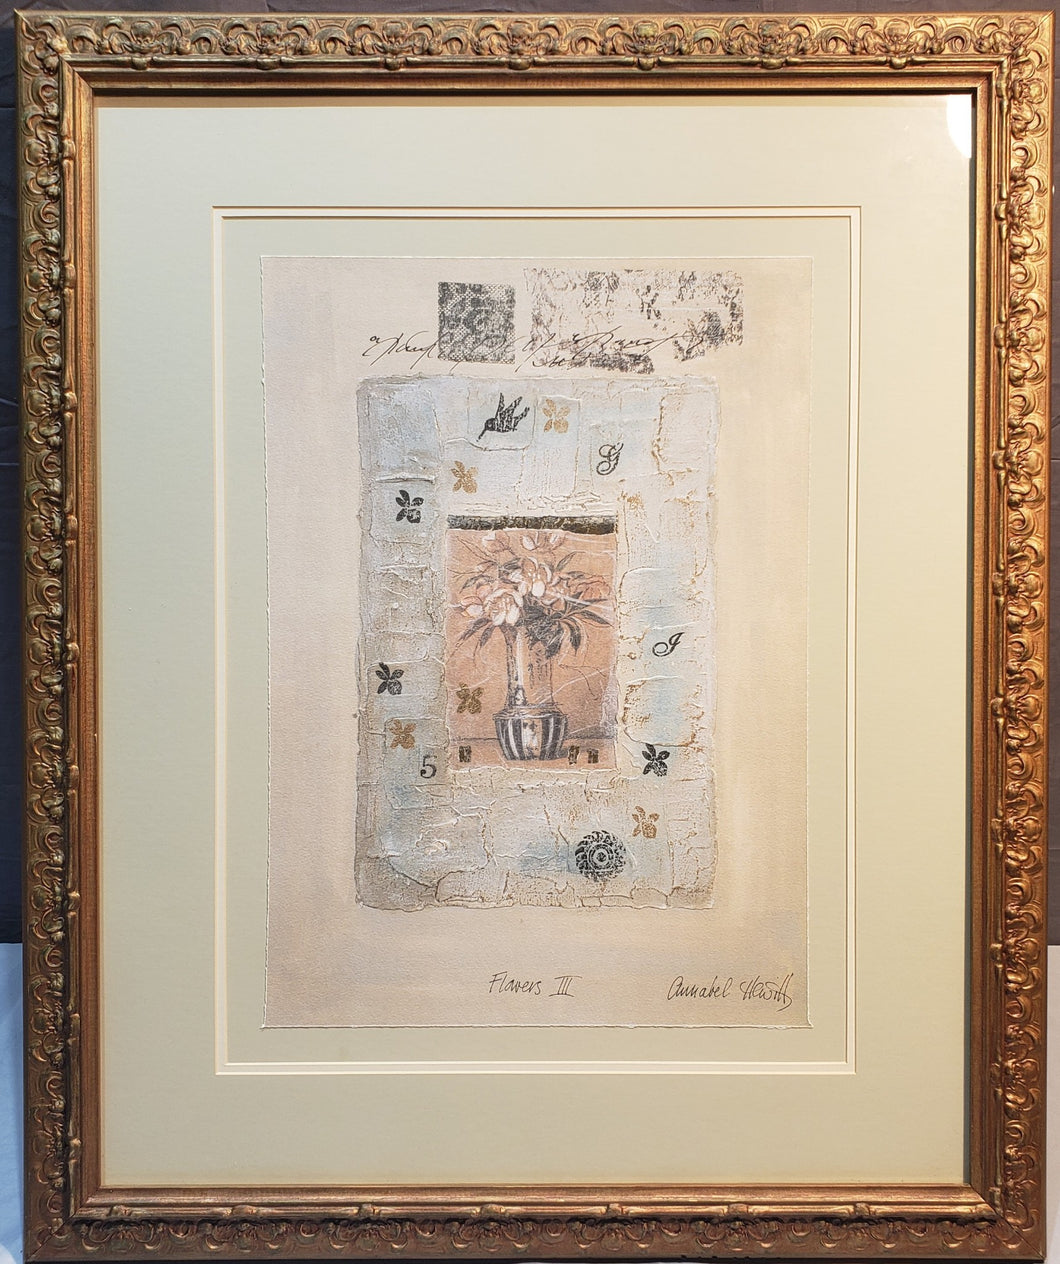 LARGE FRAMED ANNABEL HEWITT